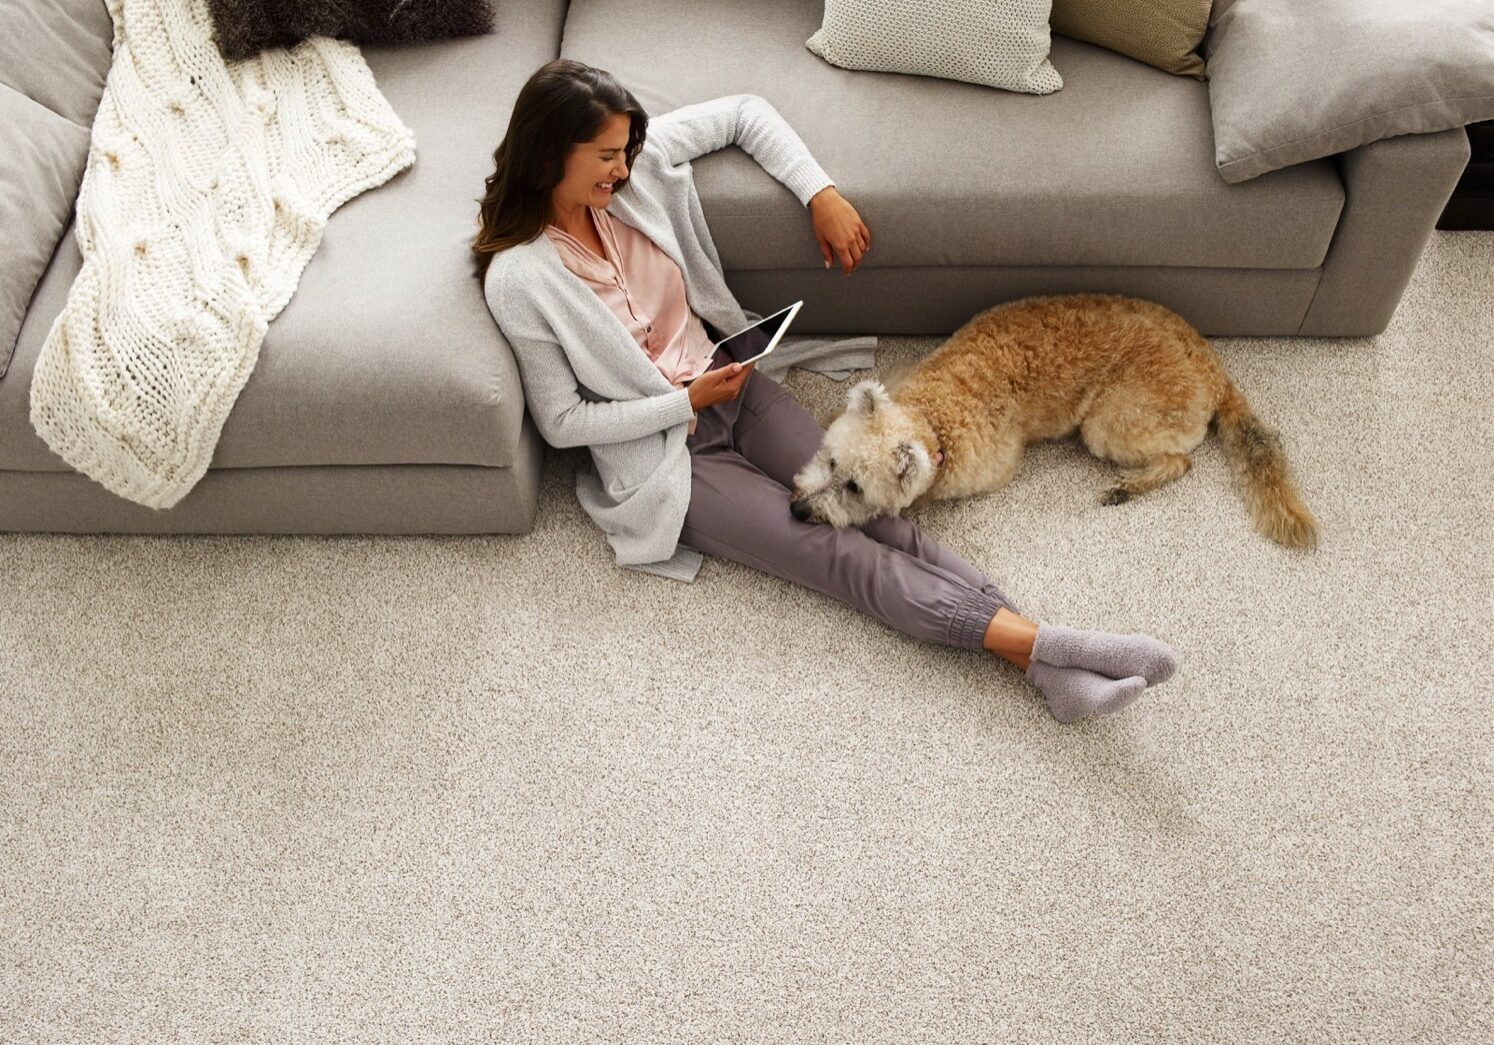 woman and dog on carpet   Dolphin Carpet & Tile